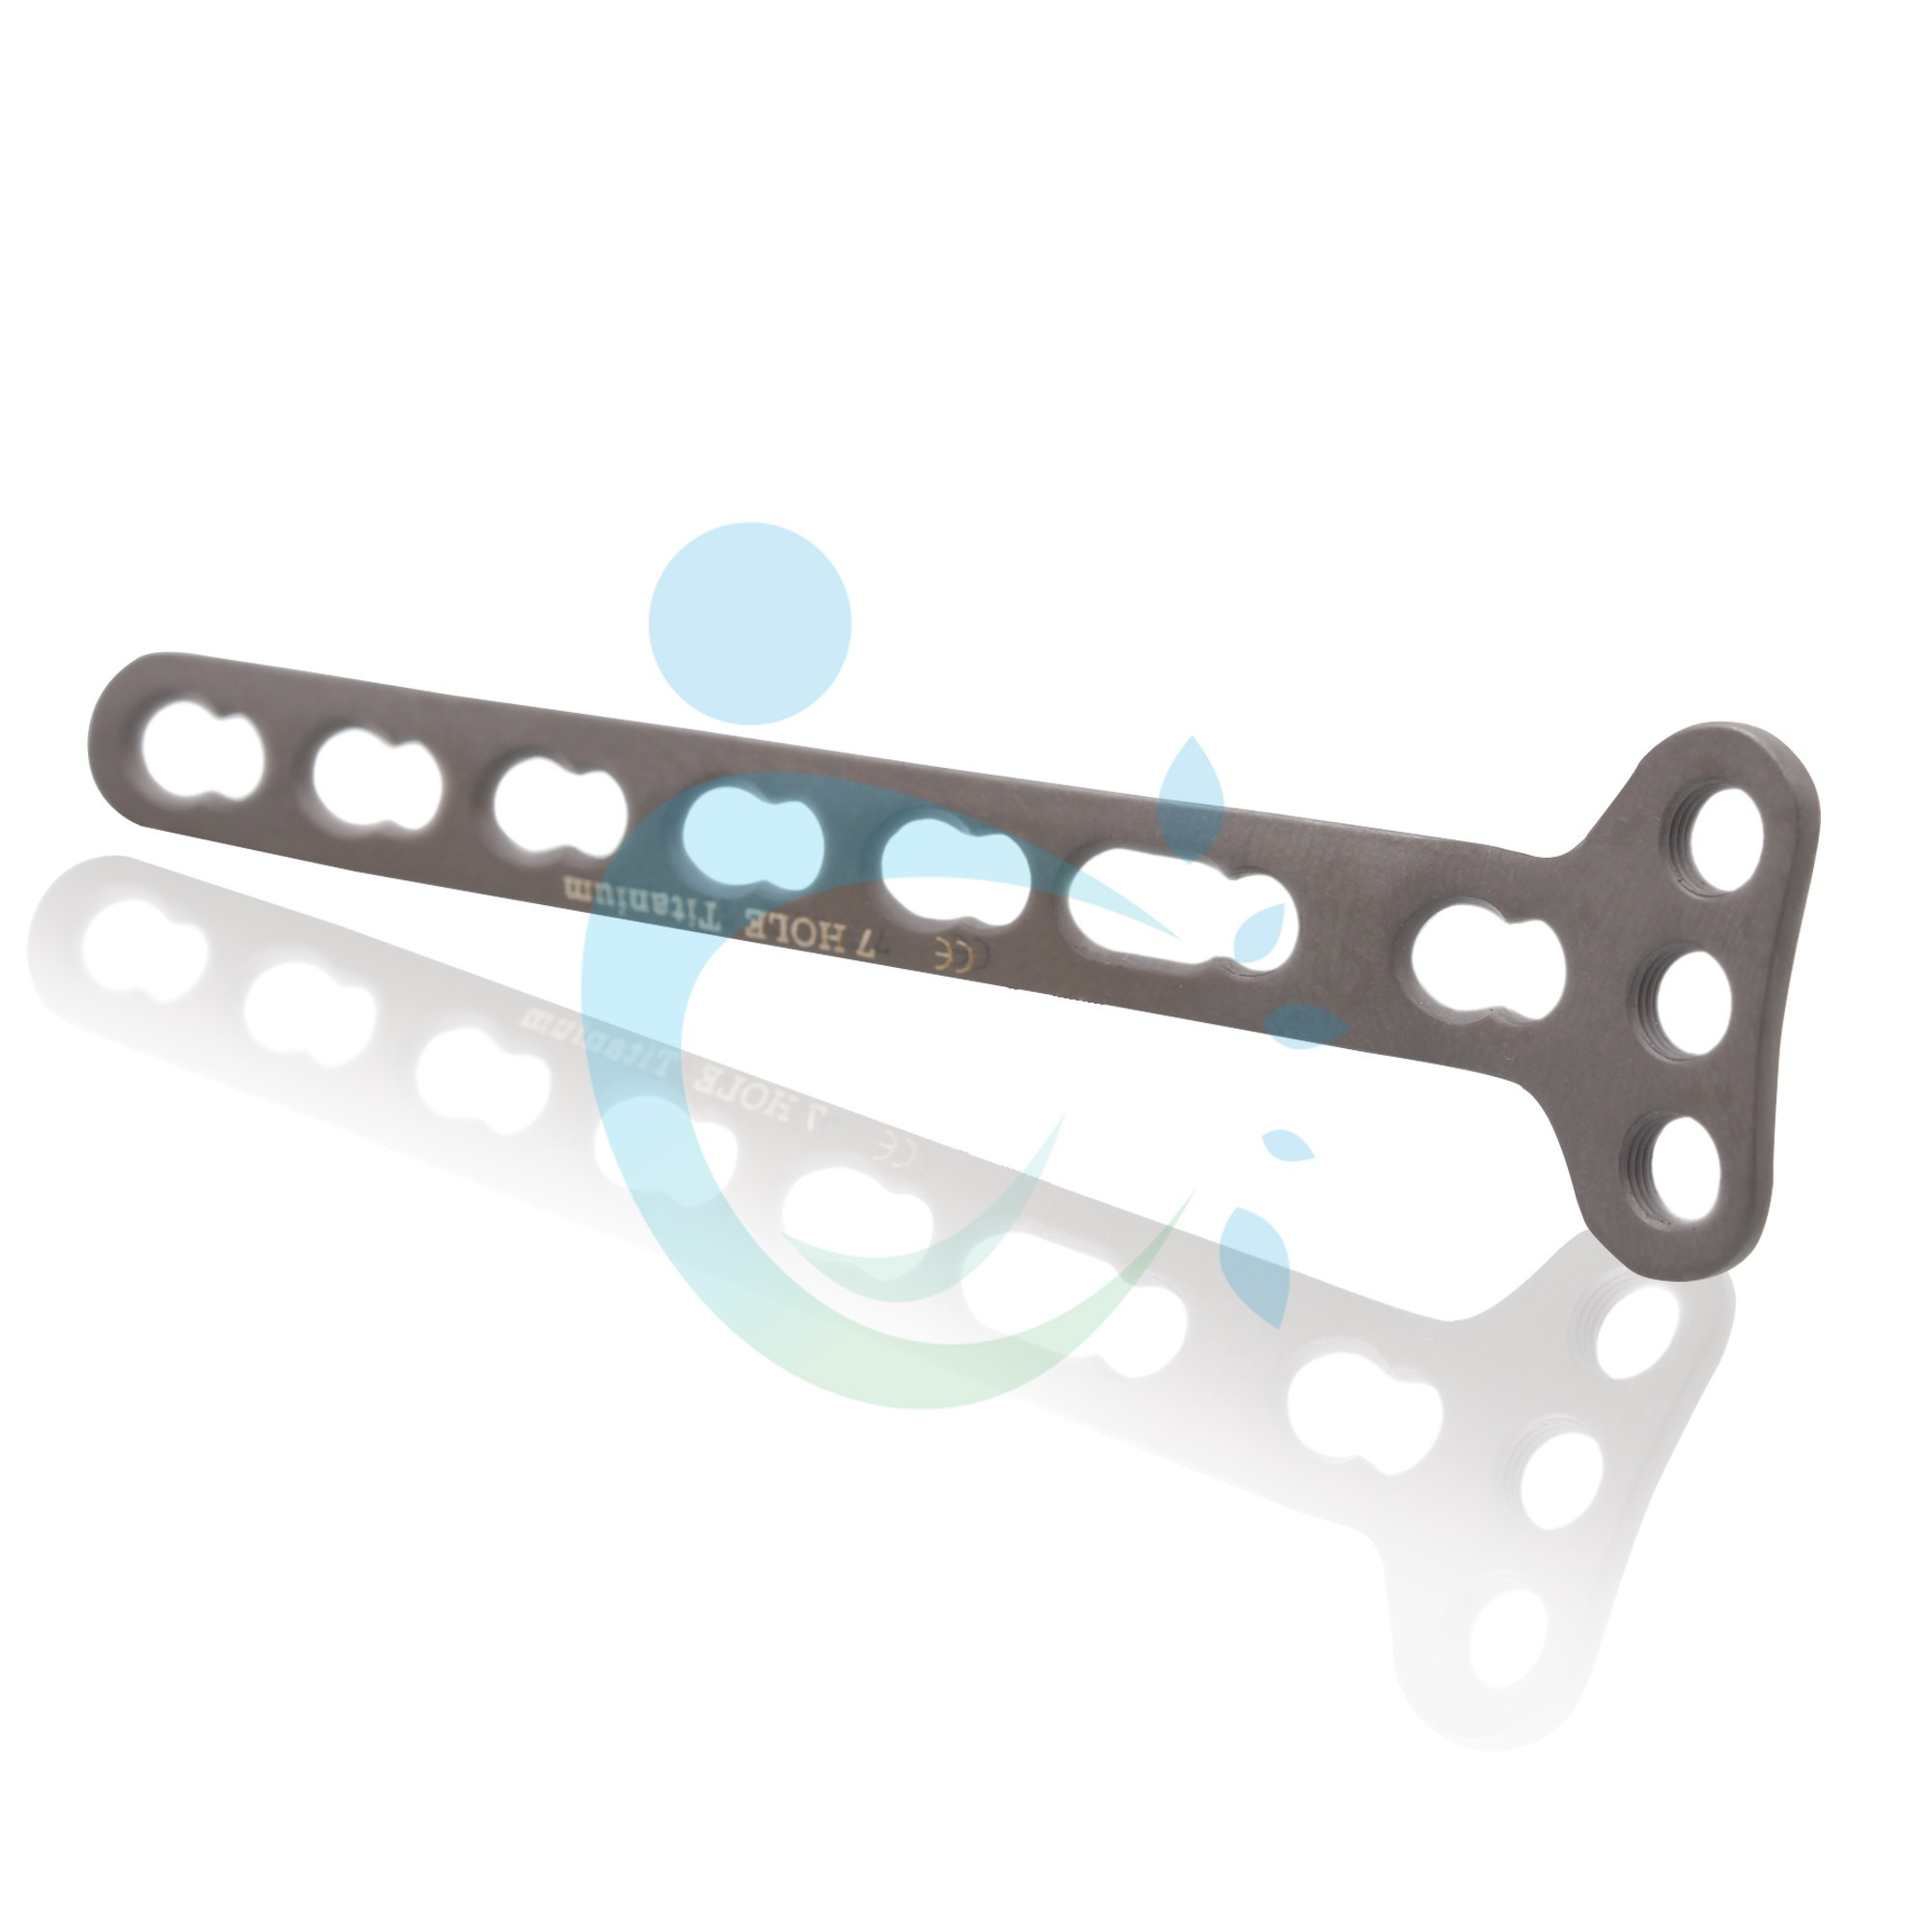 3.5mm Distal radius Locking Plate